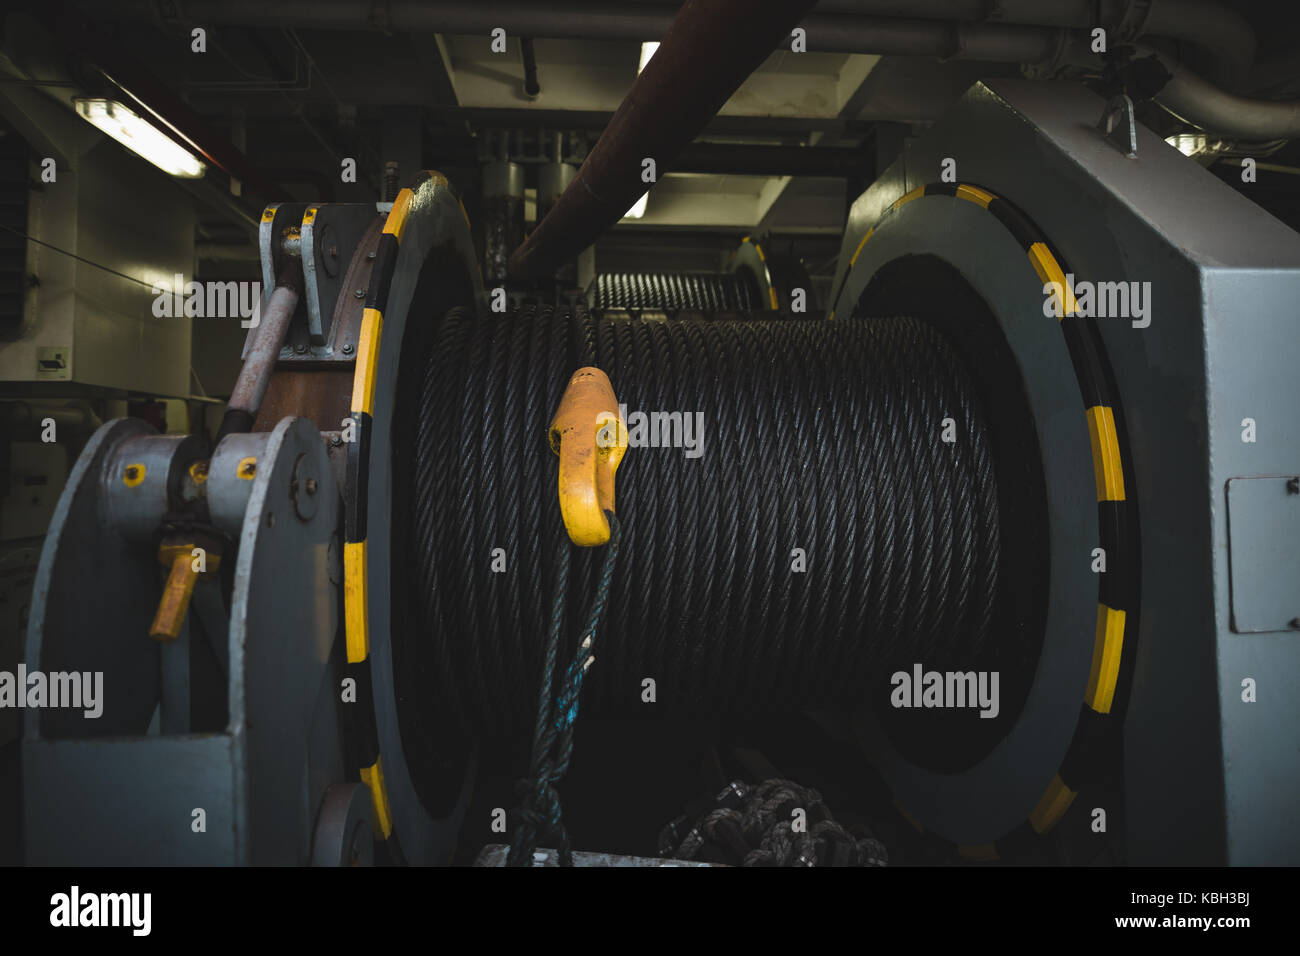 Close-up of steel wire rope on production platform - Stock Image